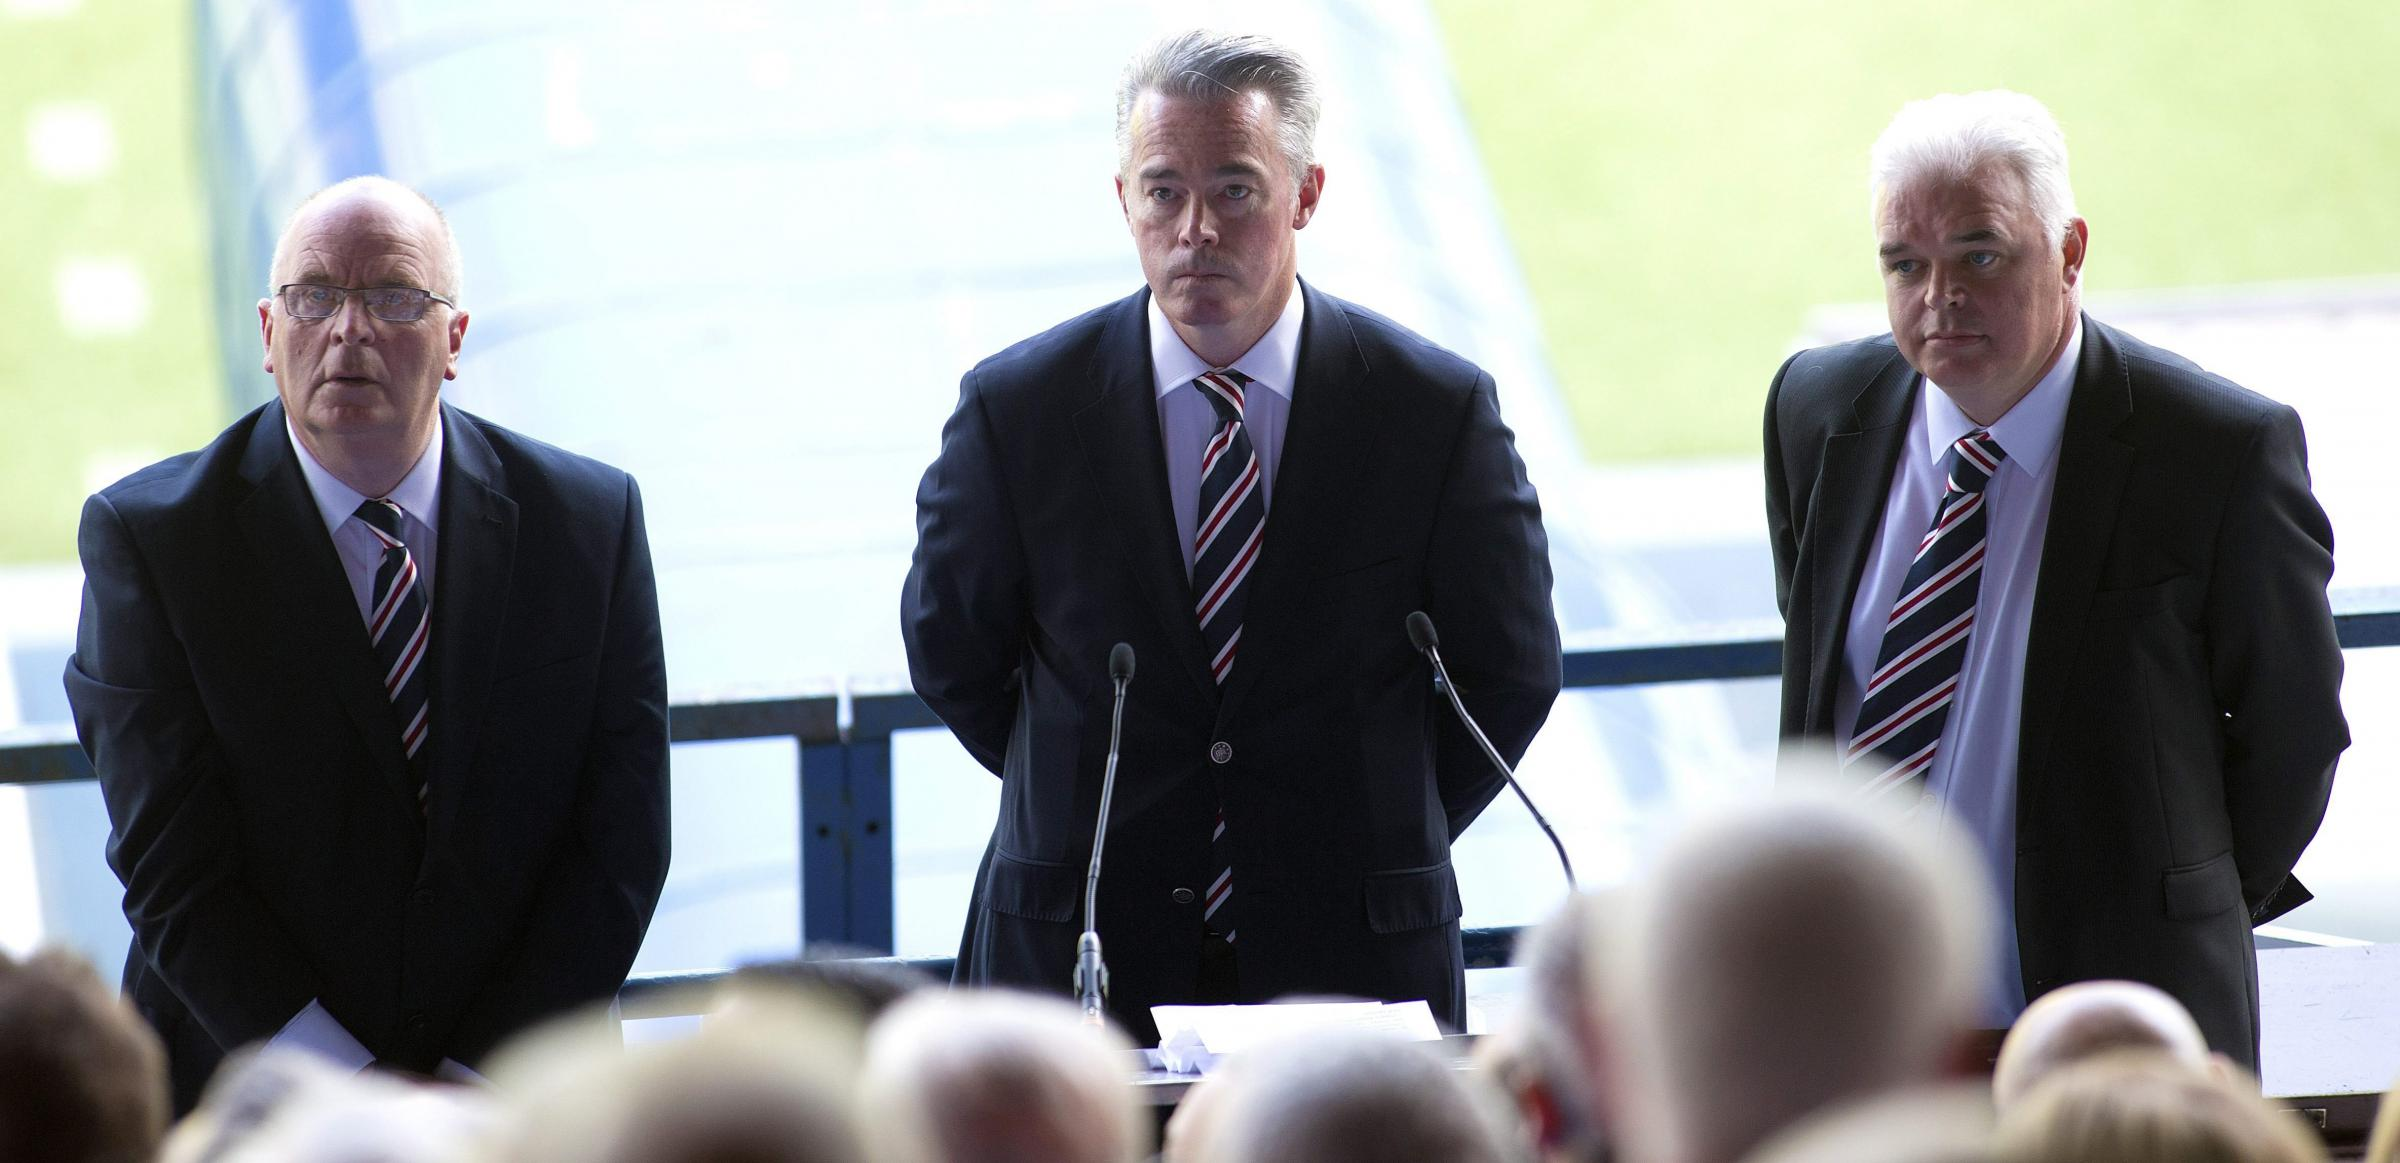 Rangers directors John Gilligan, Paul Murray and company secretary James Blair during a general meeting of shareholders last month